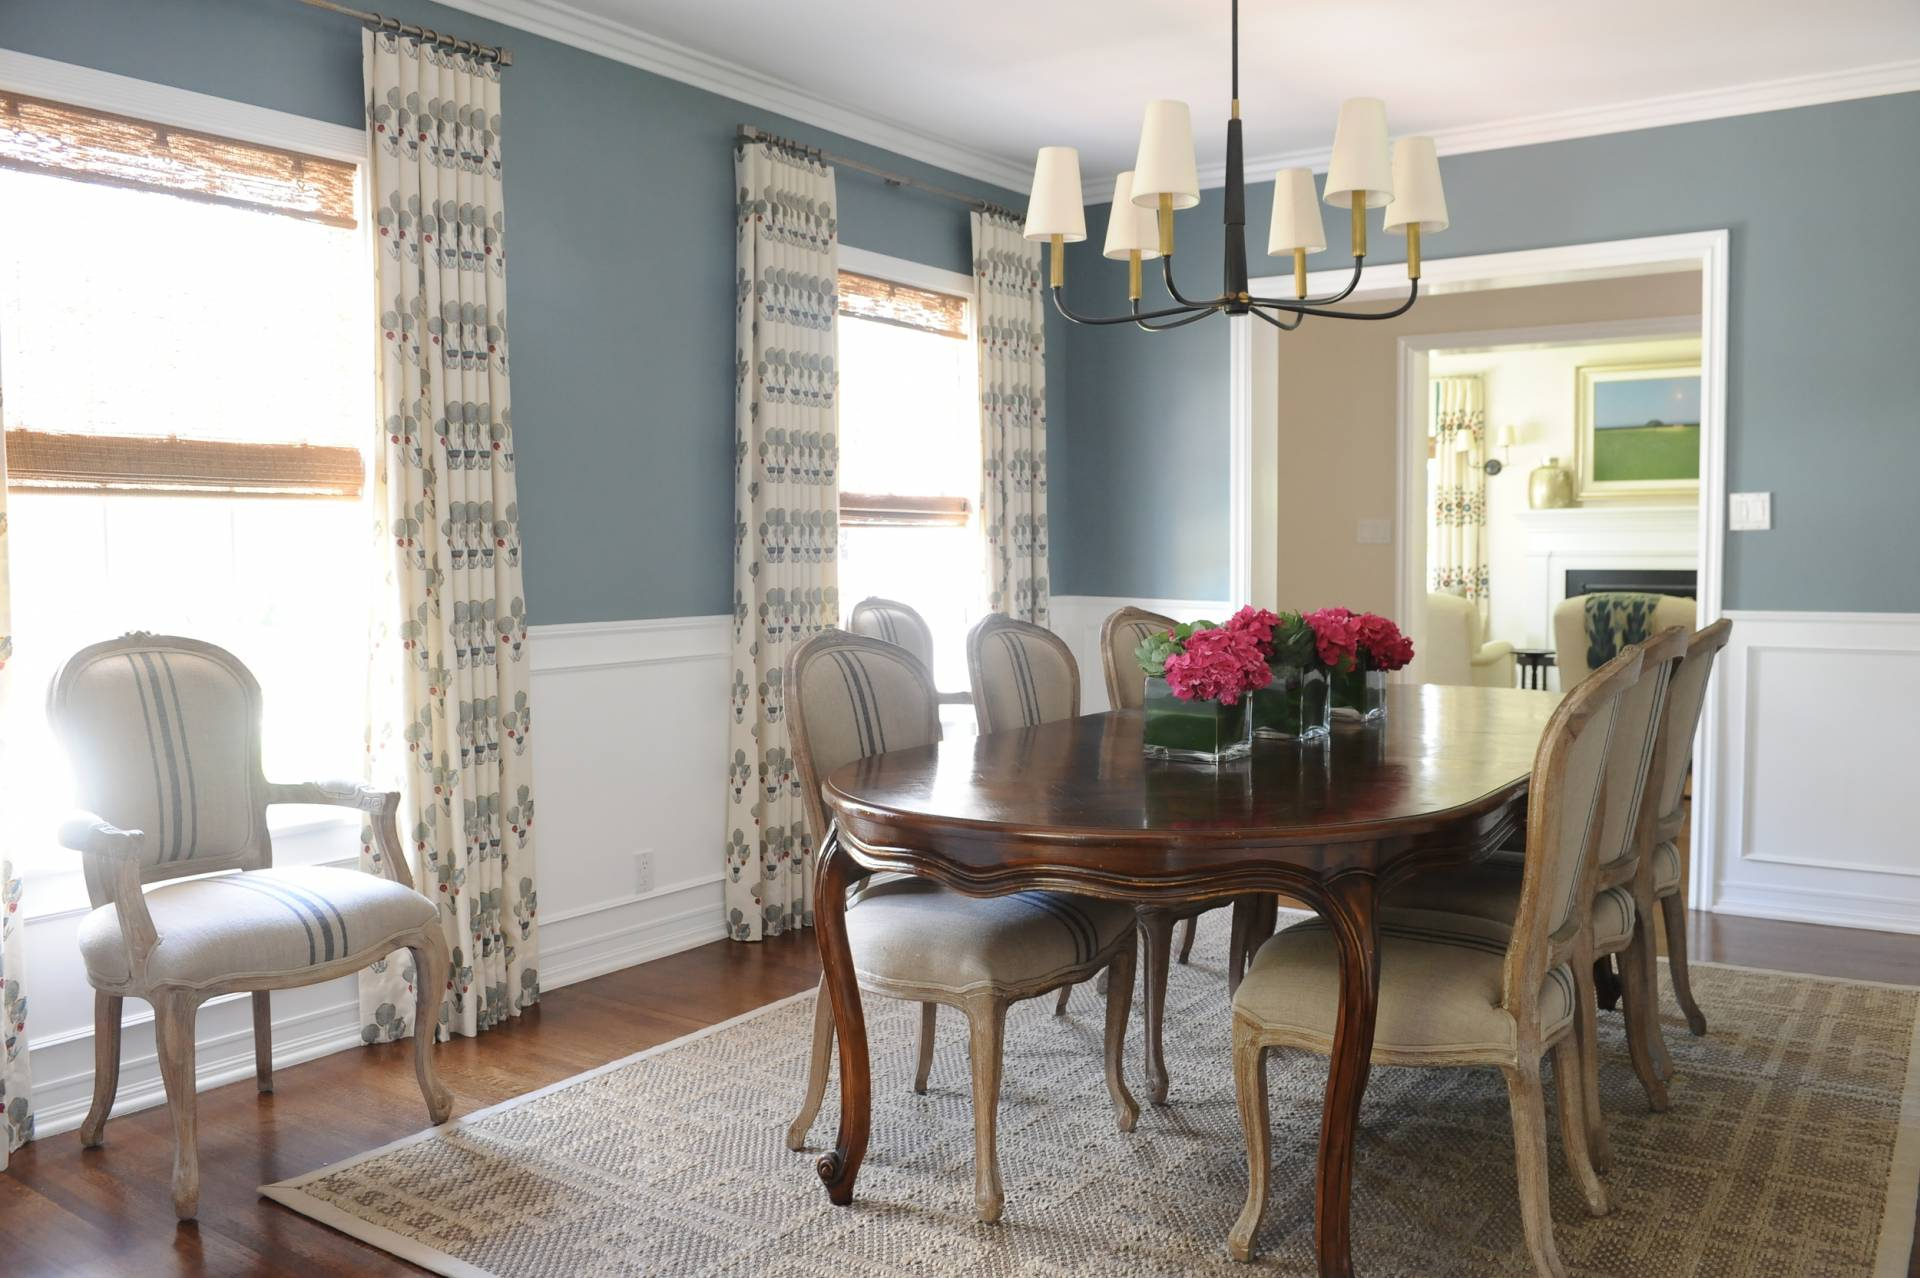 Ripplefold drapery and iron rods and rings in dining room